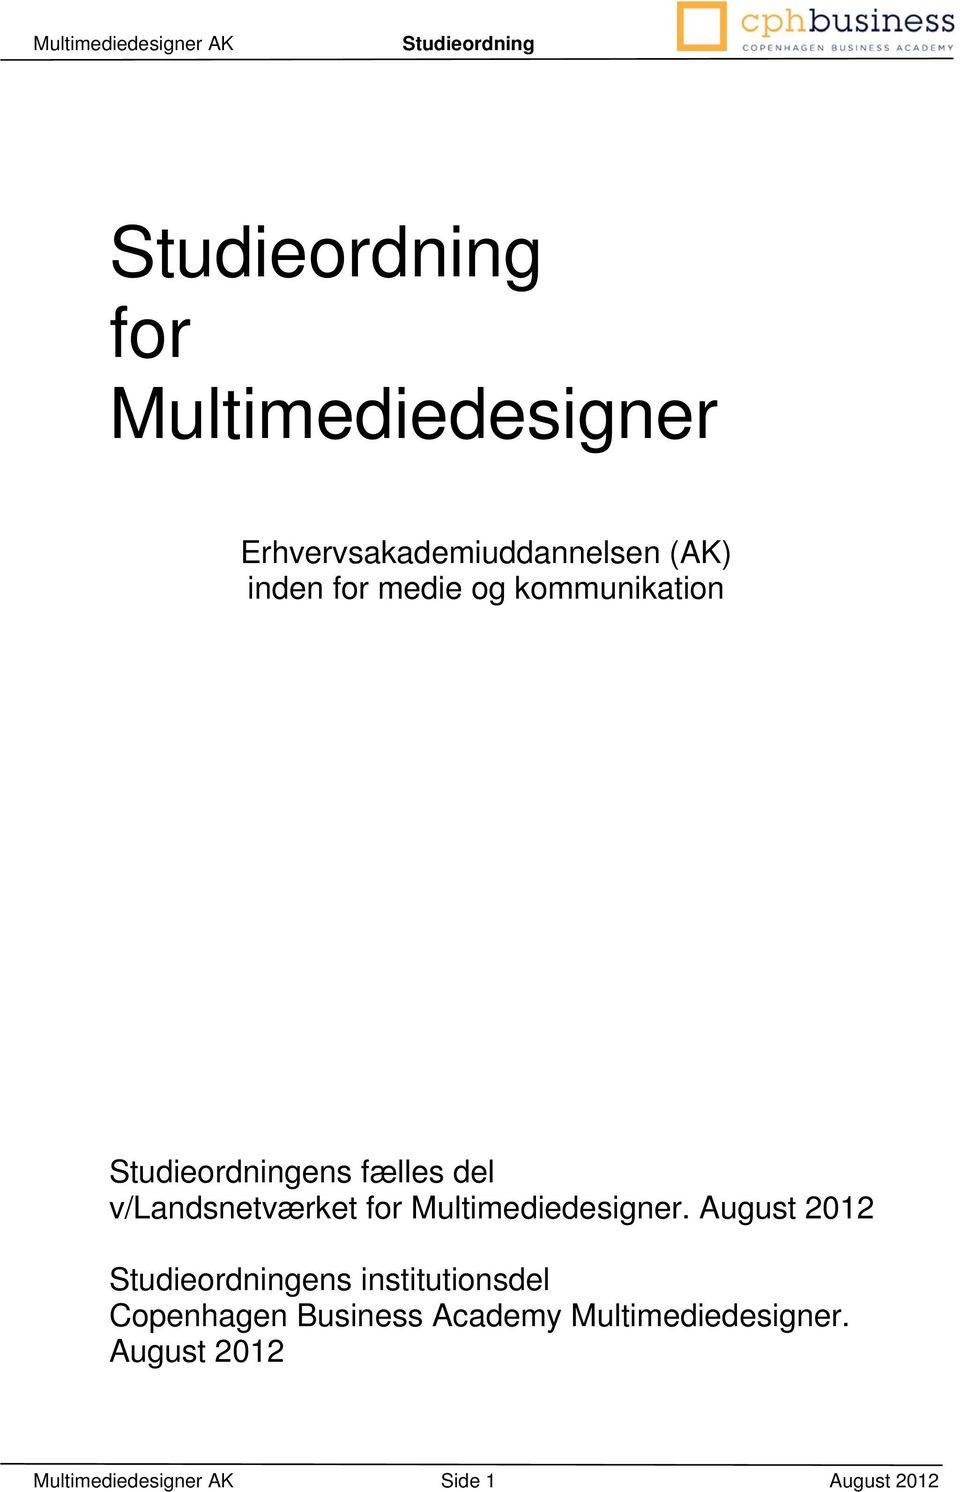 Multimediedesigner.